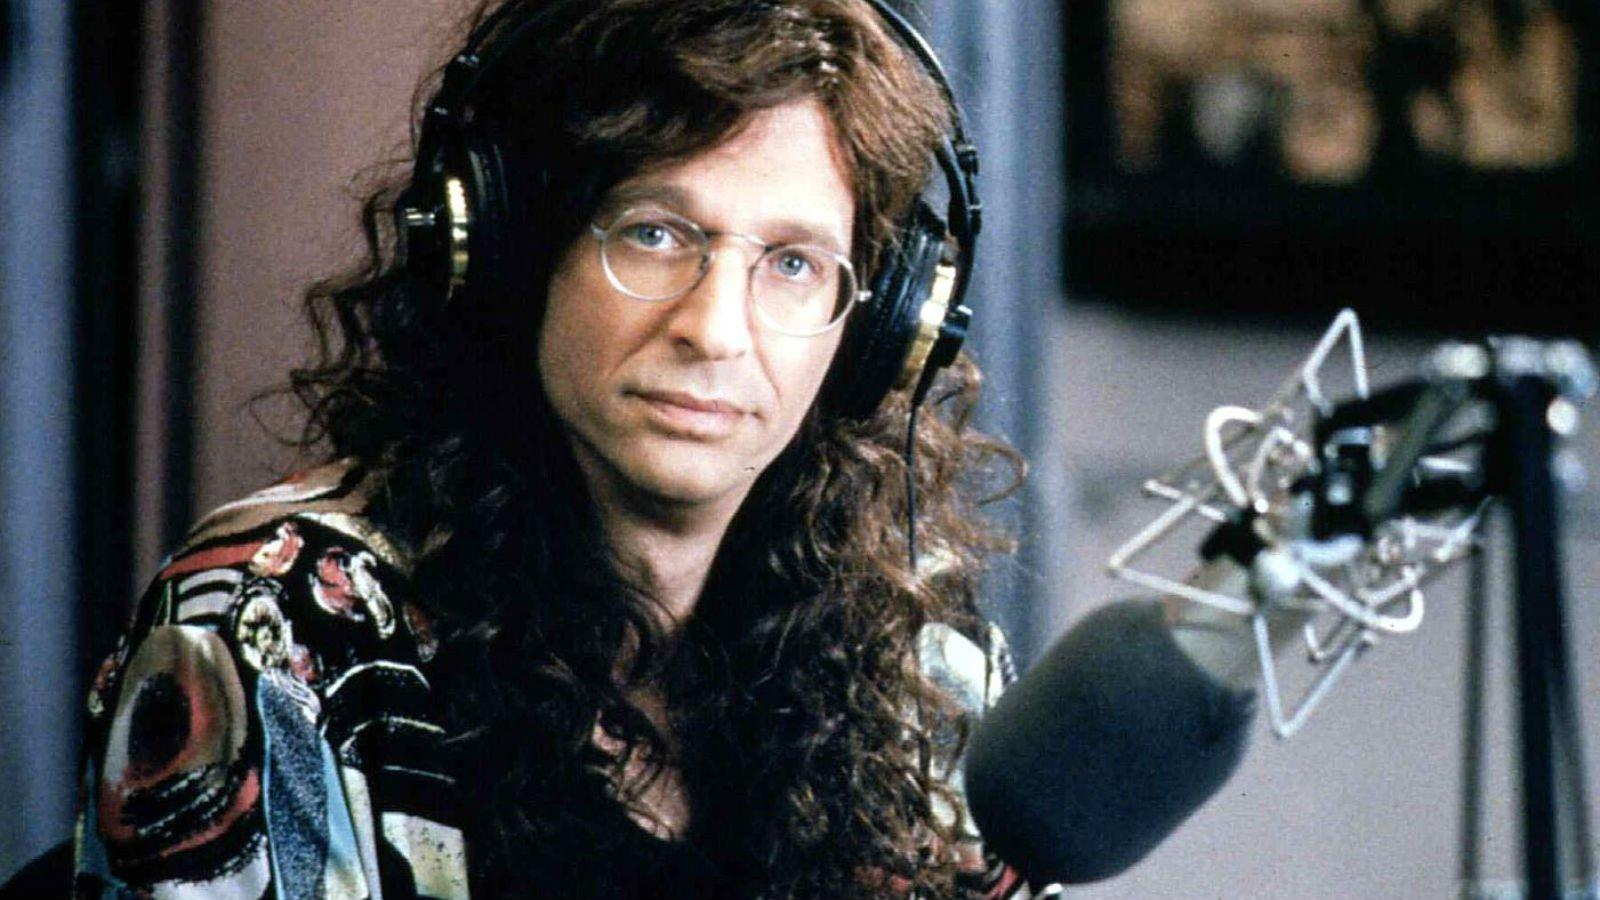 HOWARD STERN radio d